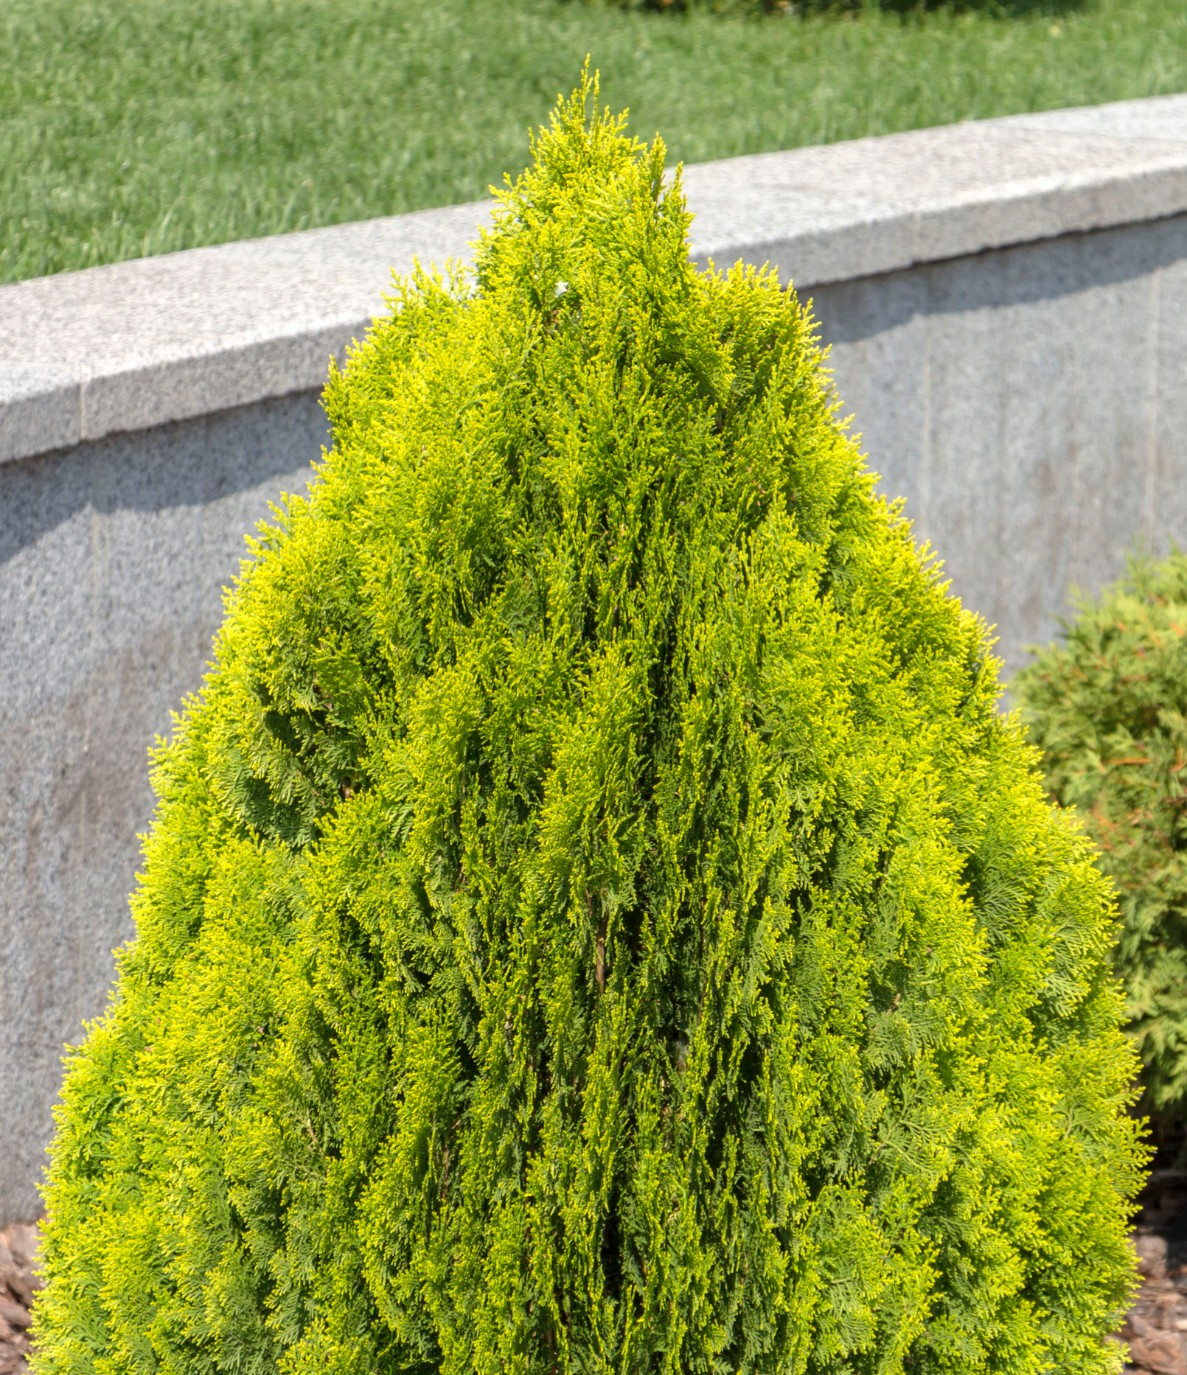 Arborvitae makes an excellent fast-growing border shrub.